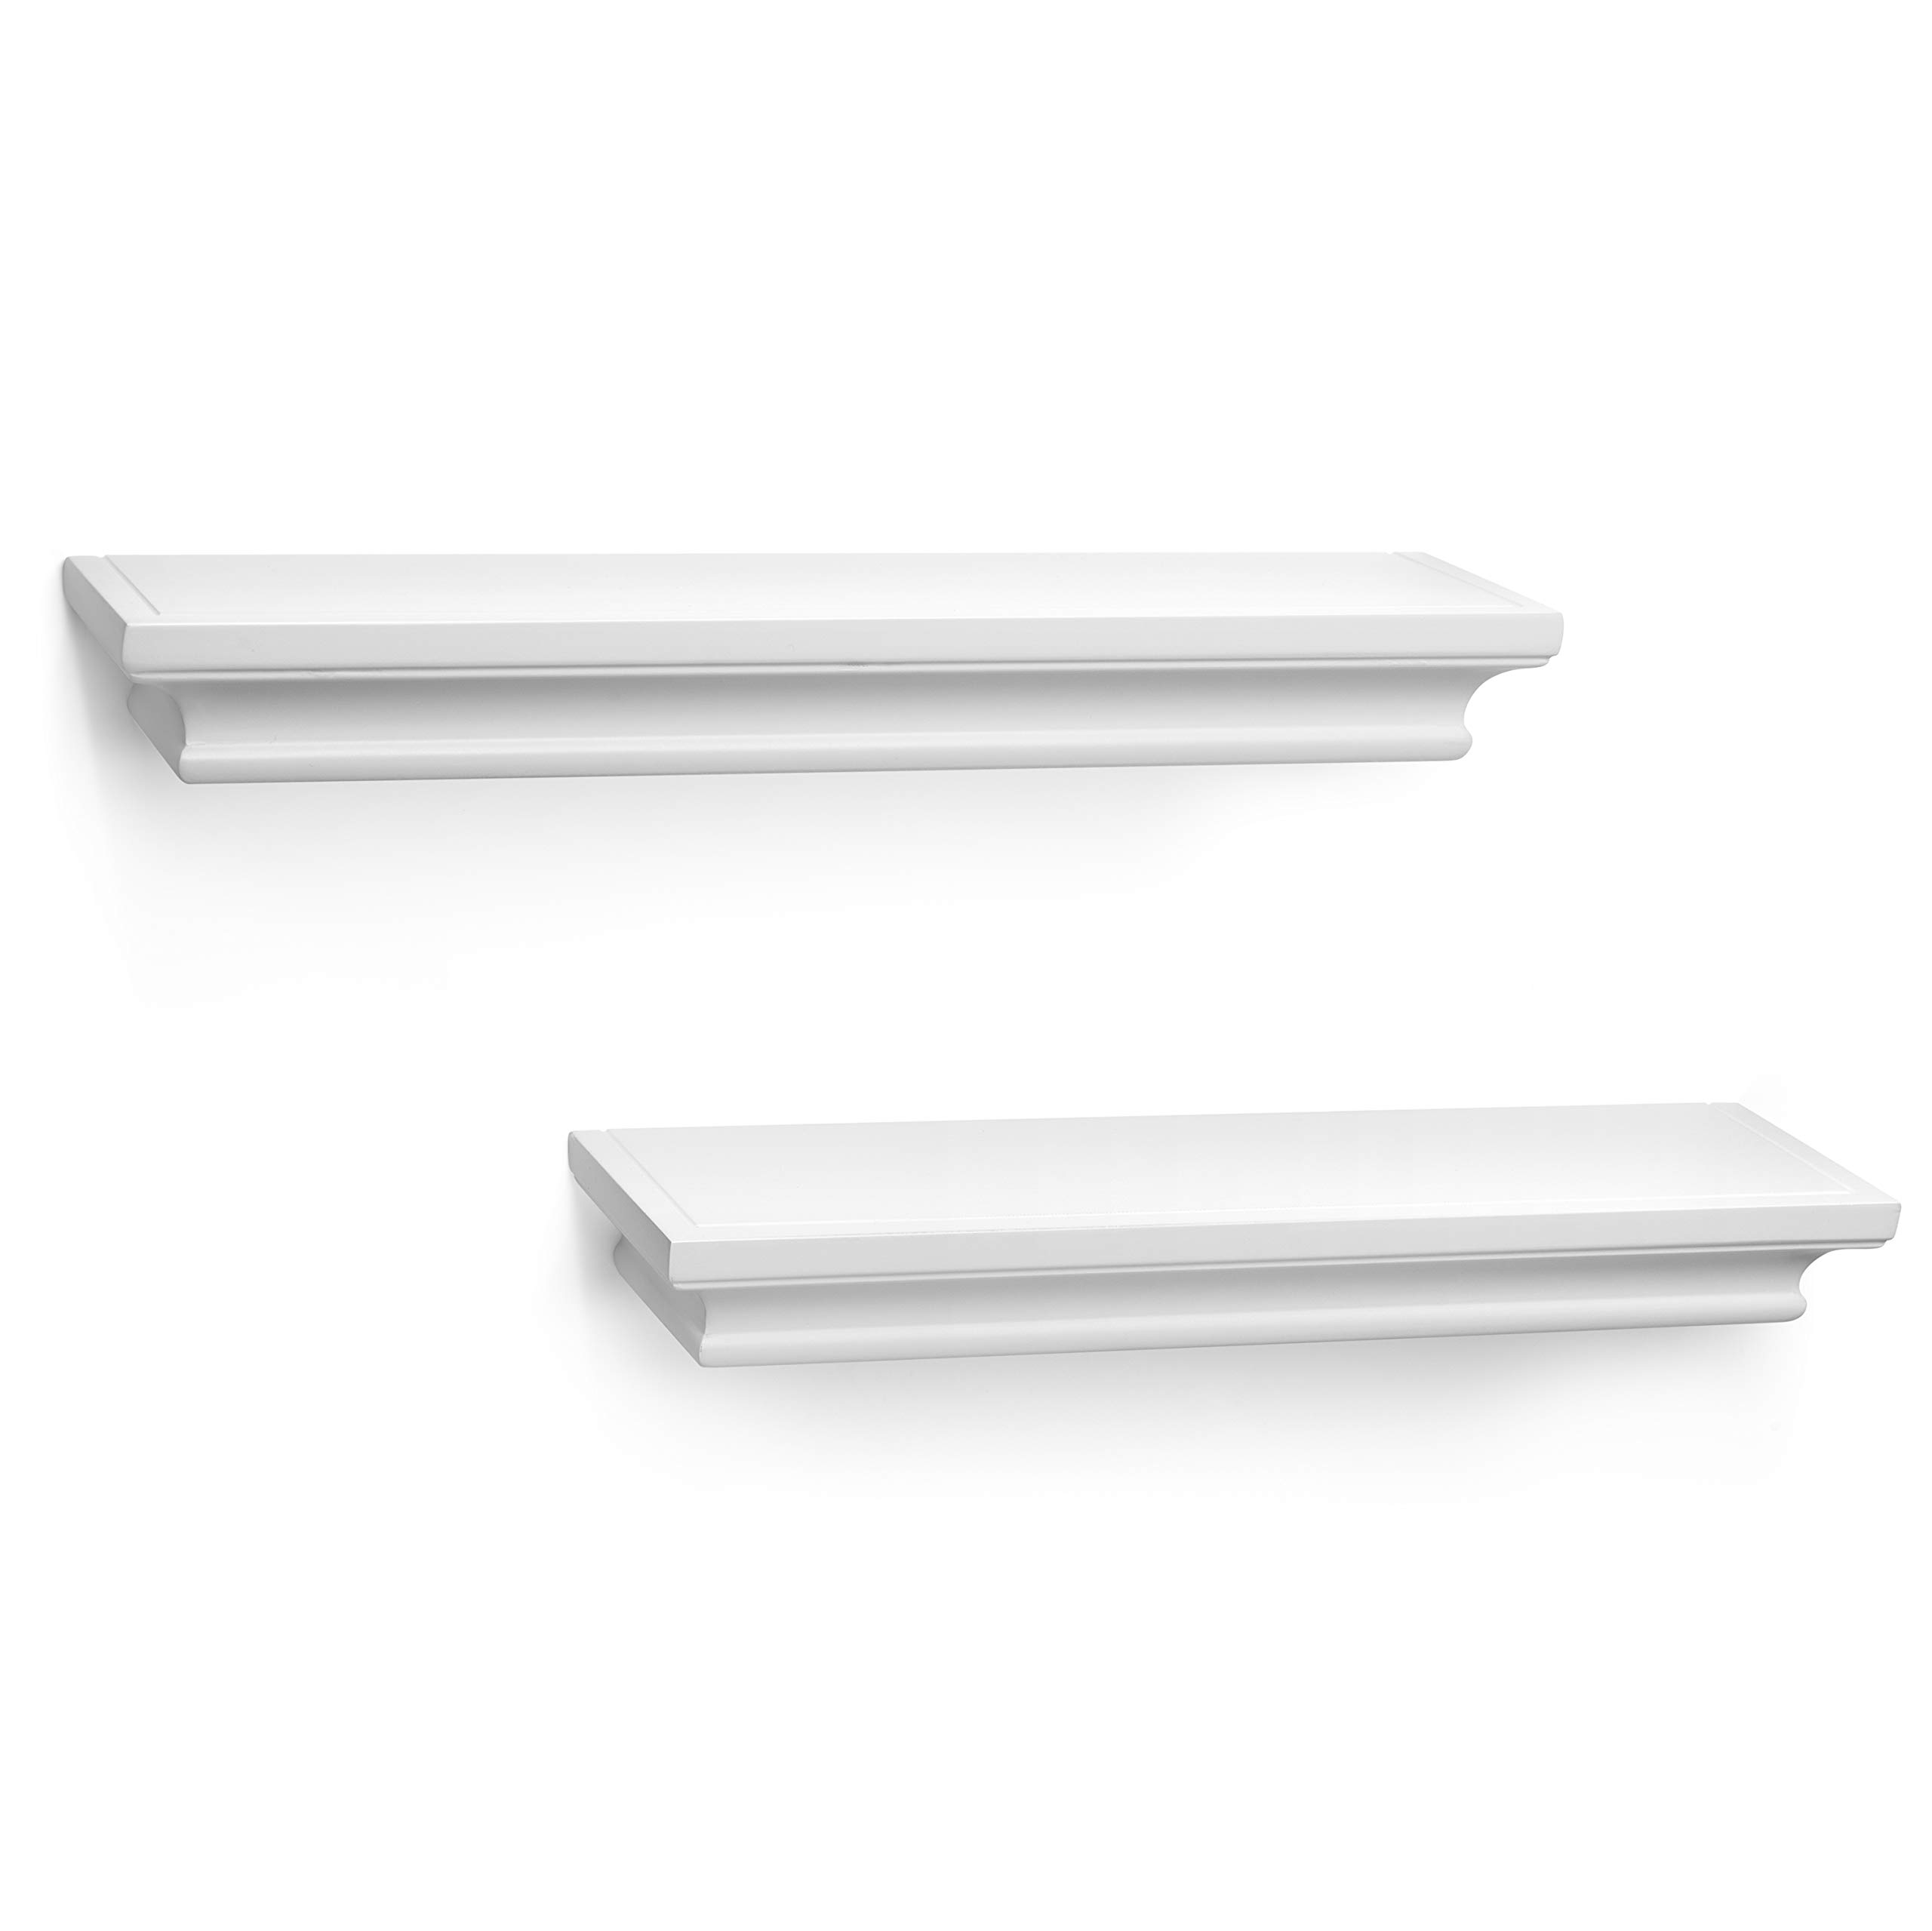 Kloveyleaf Floating Shelves Set of 2 Modern Style Shelves for Bedroom, Kitchen, or Bath, Includes Wall Mounting Hardware (White) by Kloveyleaf